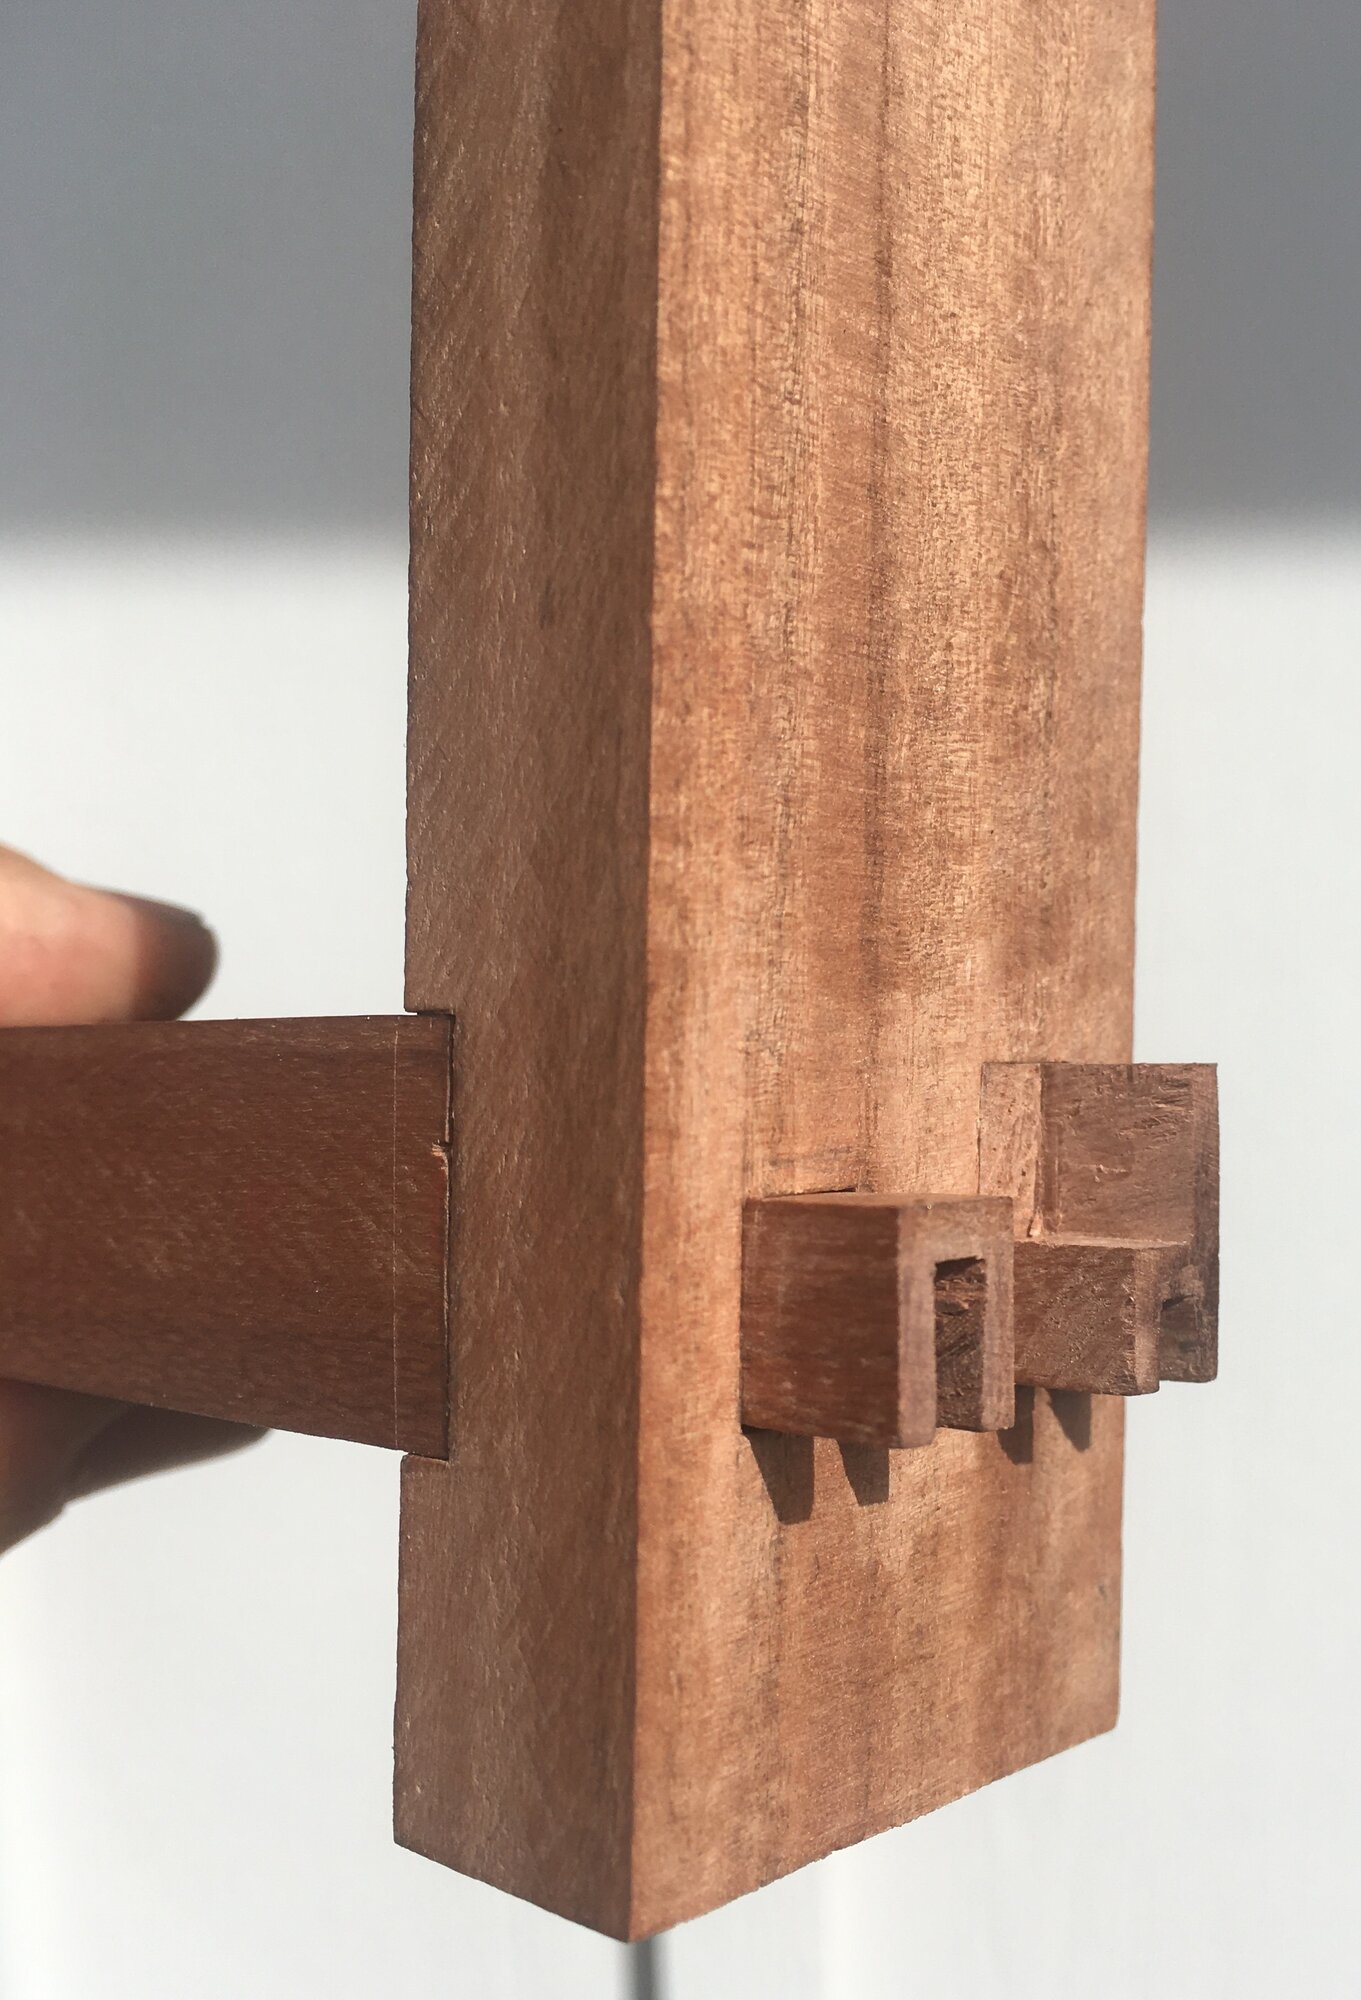 AoD Trophy Detail -  Table and Chair Tenon